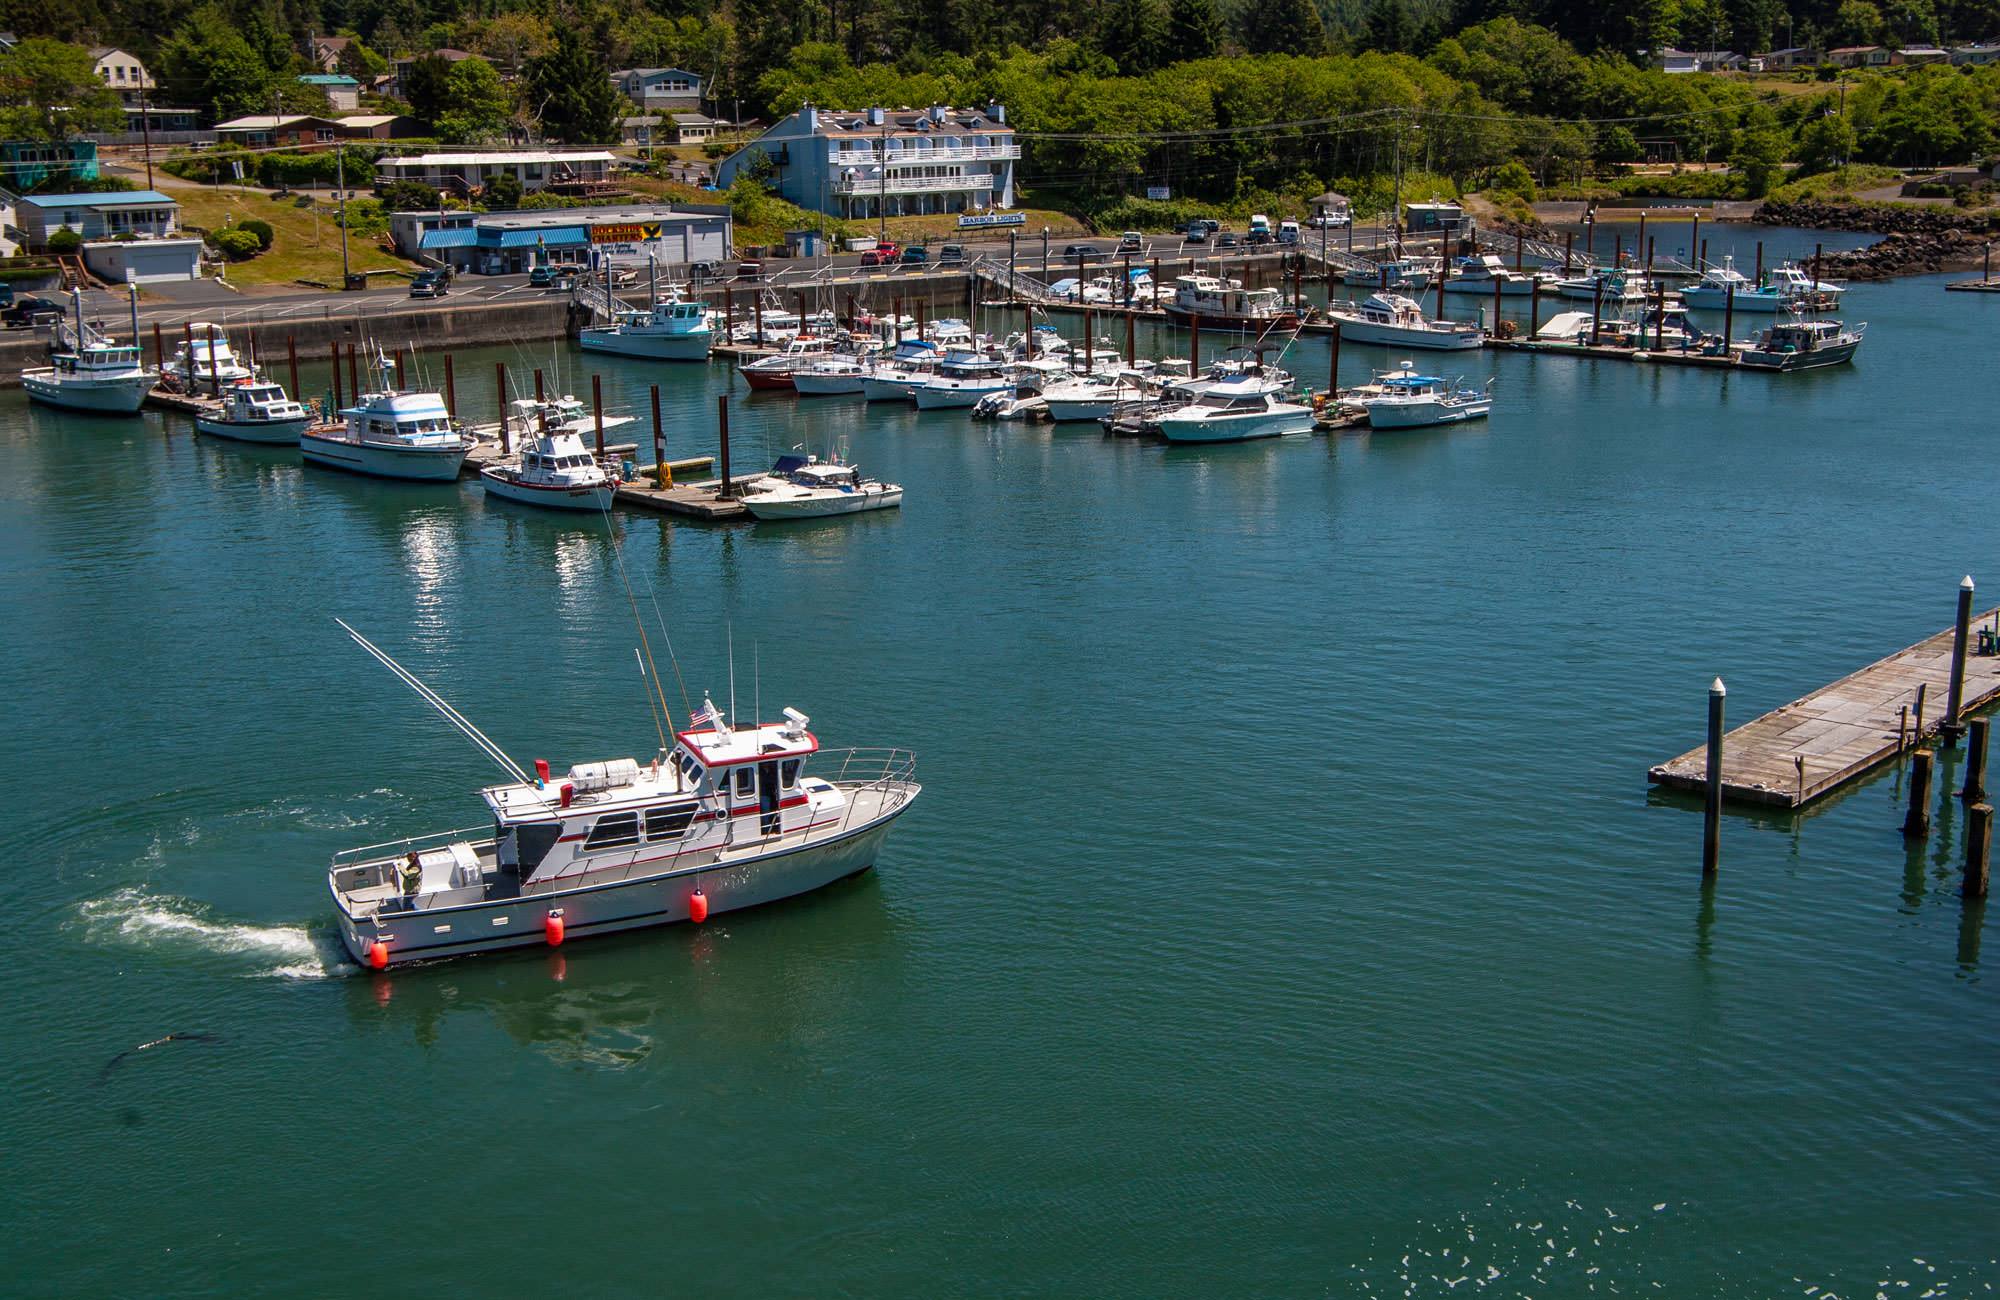 A boat moves into the small harbor of Depoe Bay.